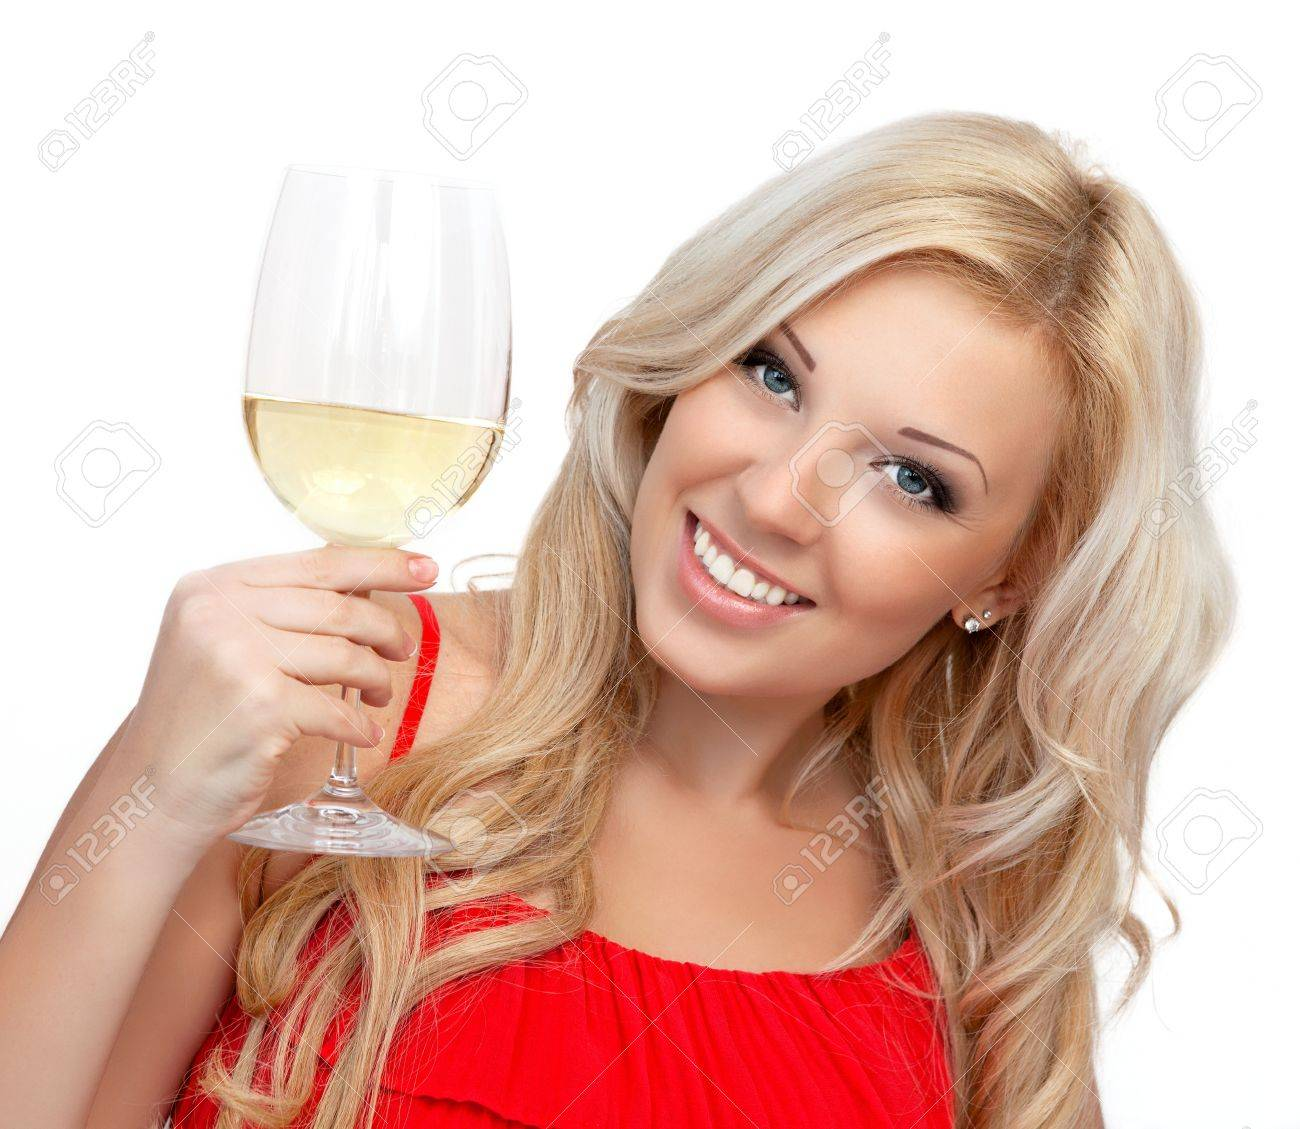 portrait of a beautiful blonde girl in a red dress with a glass of wine for the holiday Stock Photo - 18137983